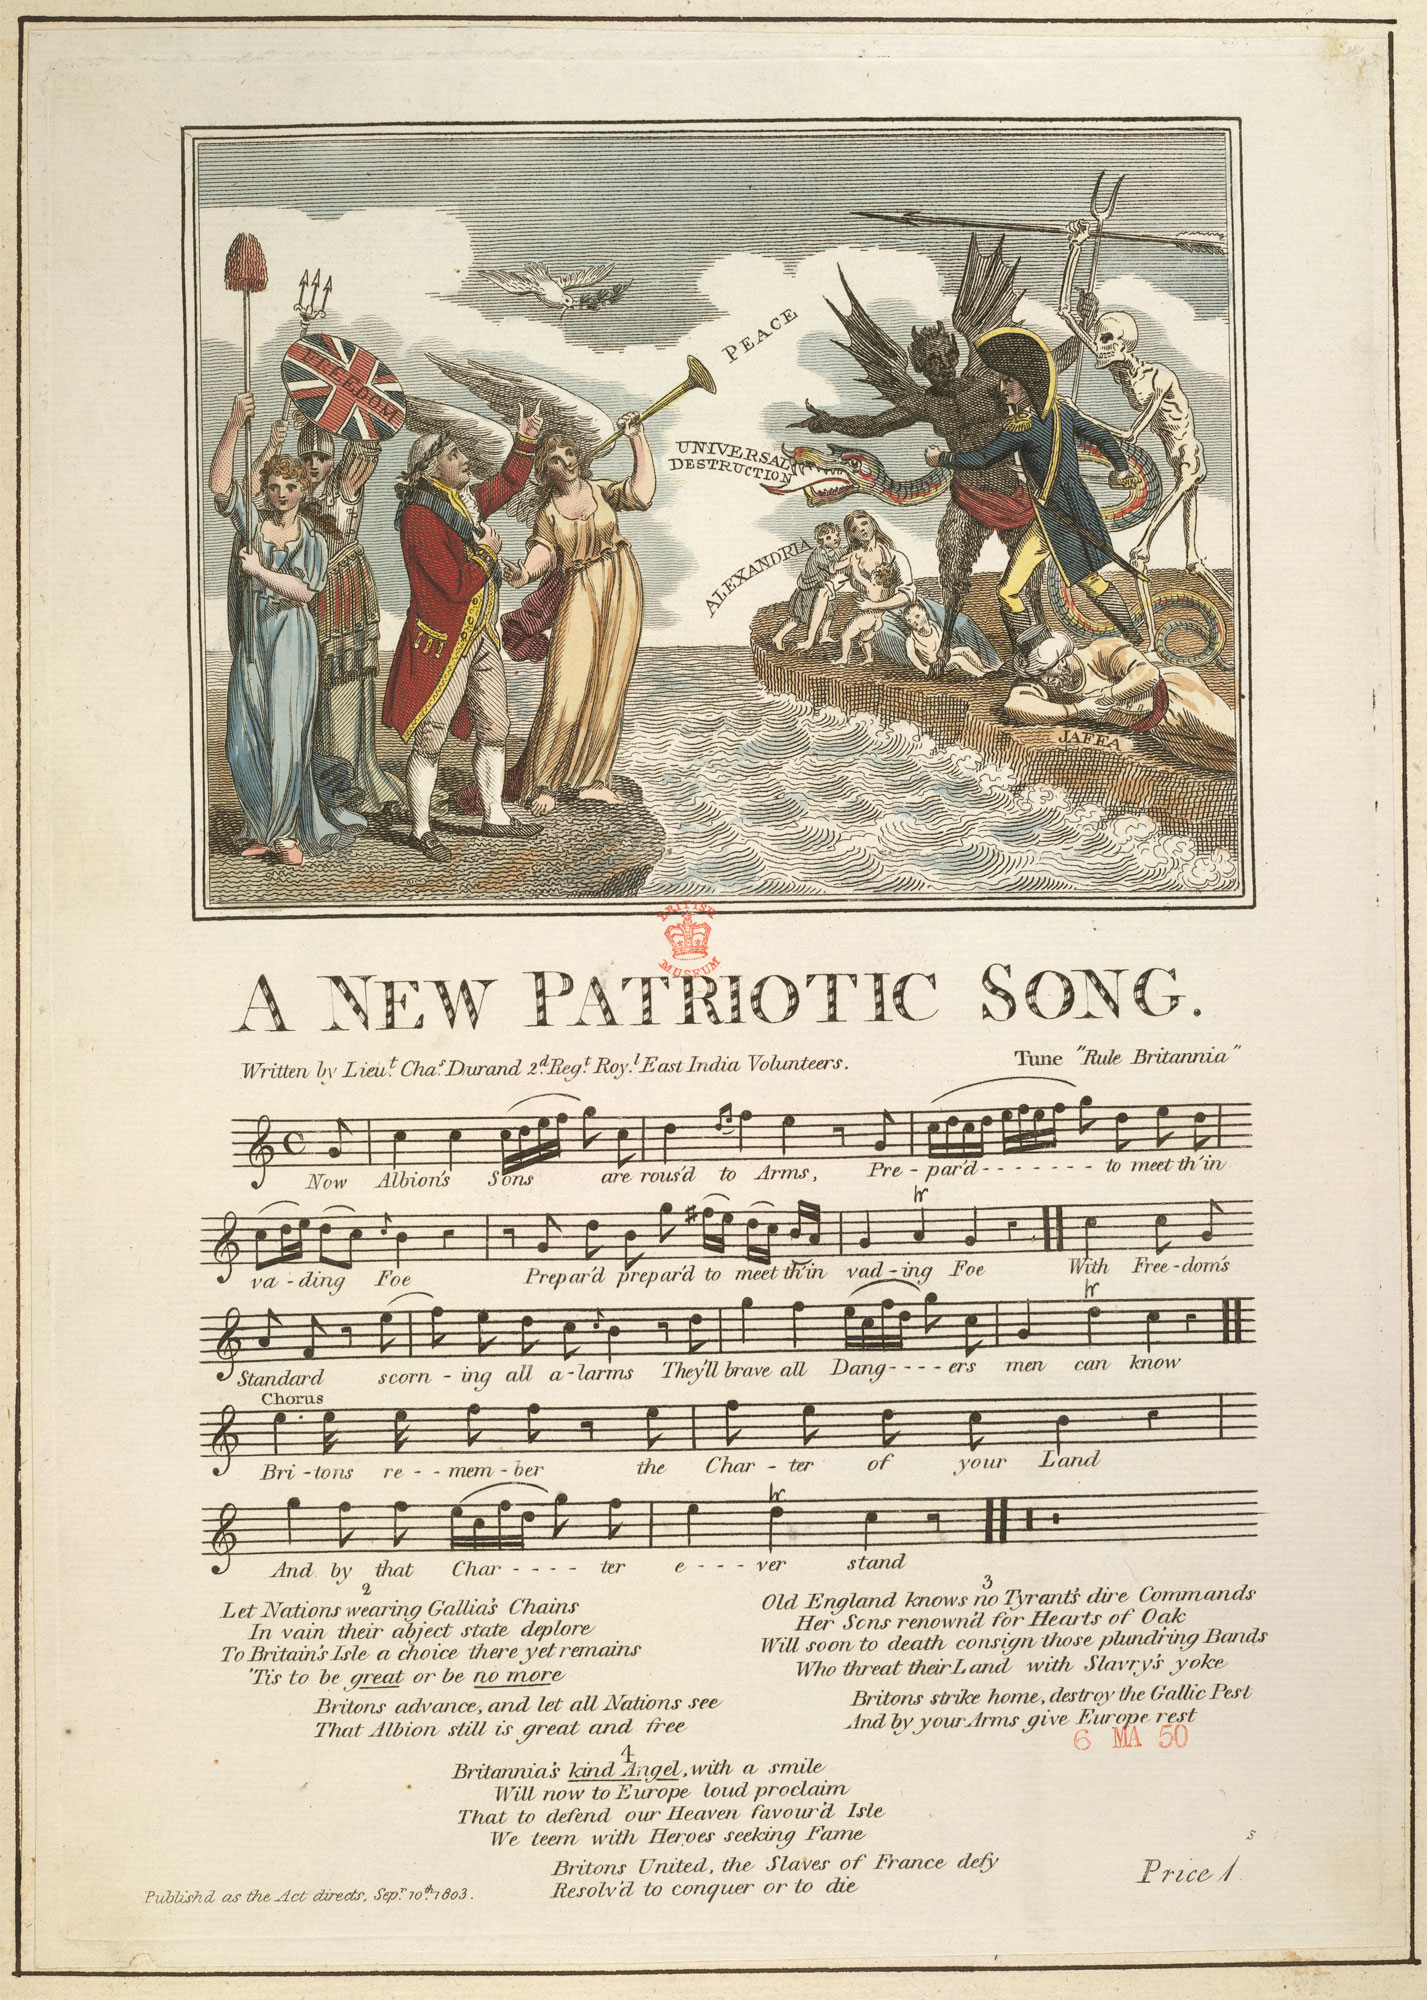 A New Patriotic Song, from a collection of material relating to the fear of a French invasion